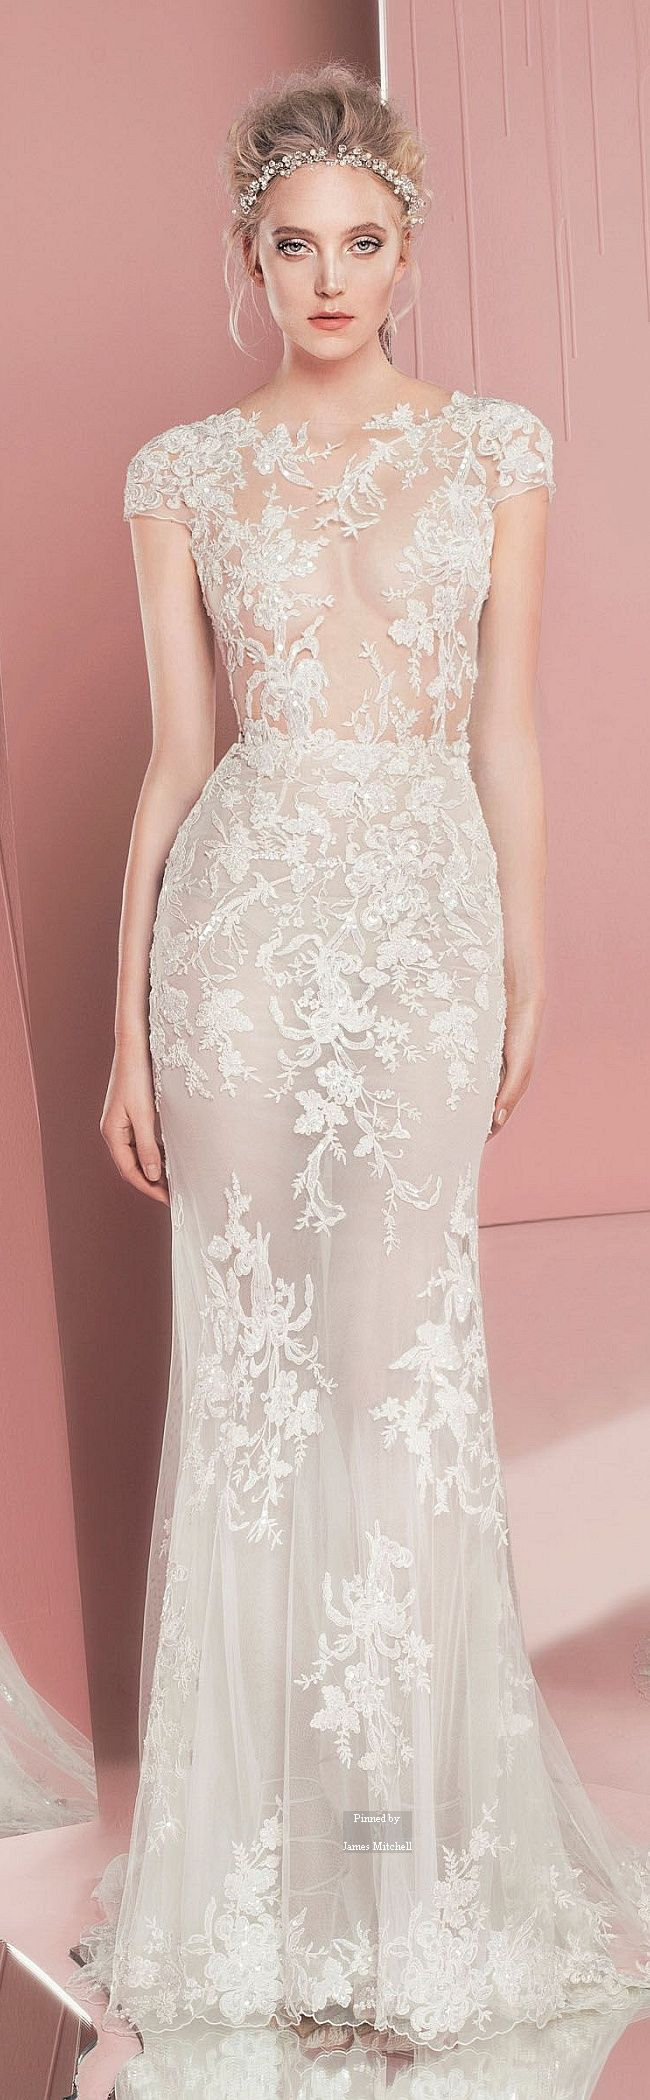 1471 best Vestidos de Novia | Wedding dress images on Pinterest ...